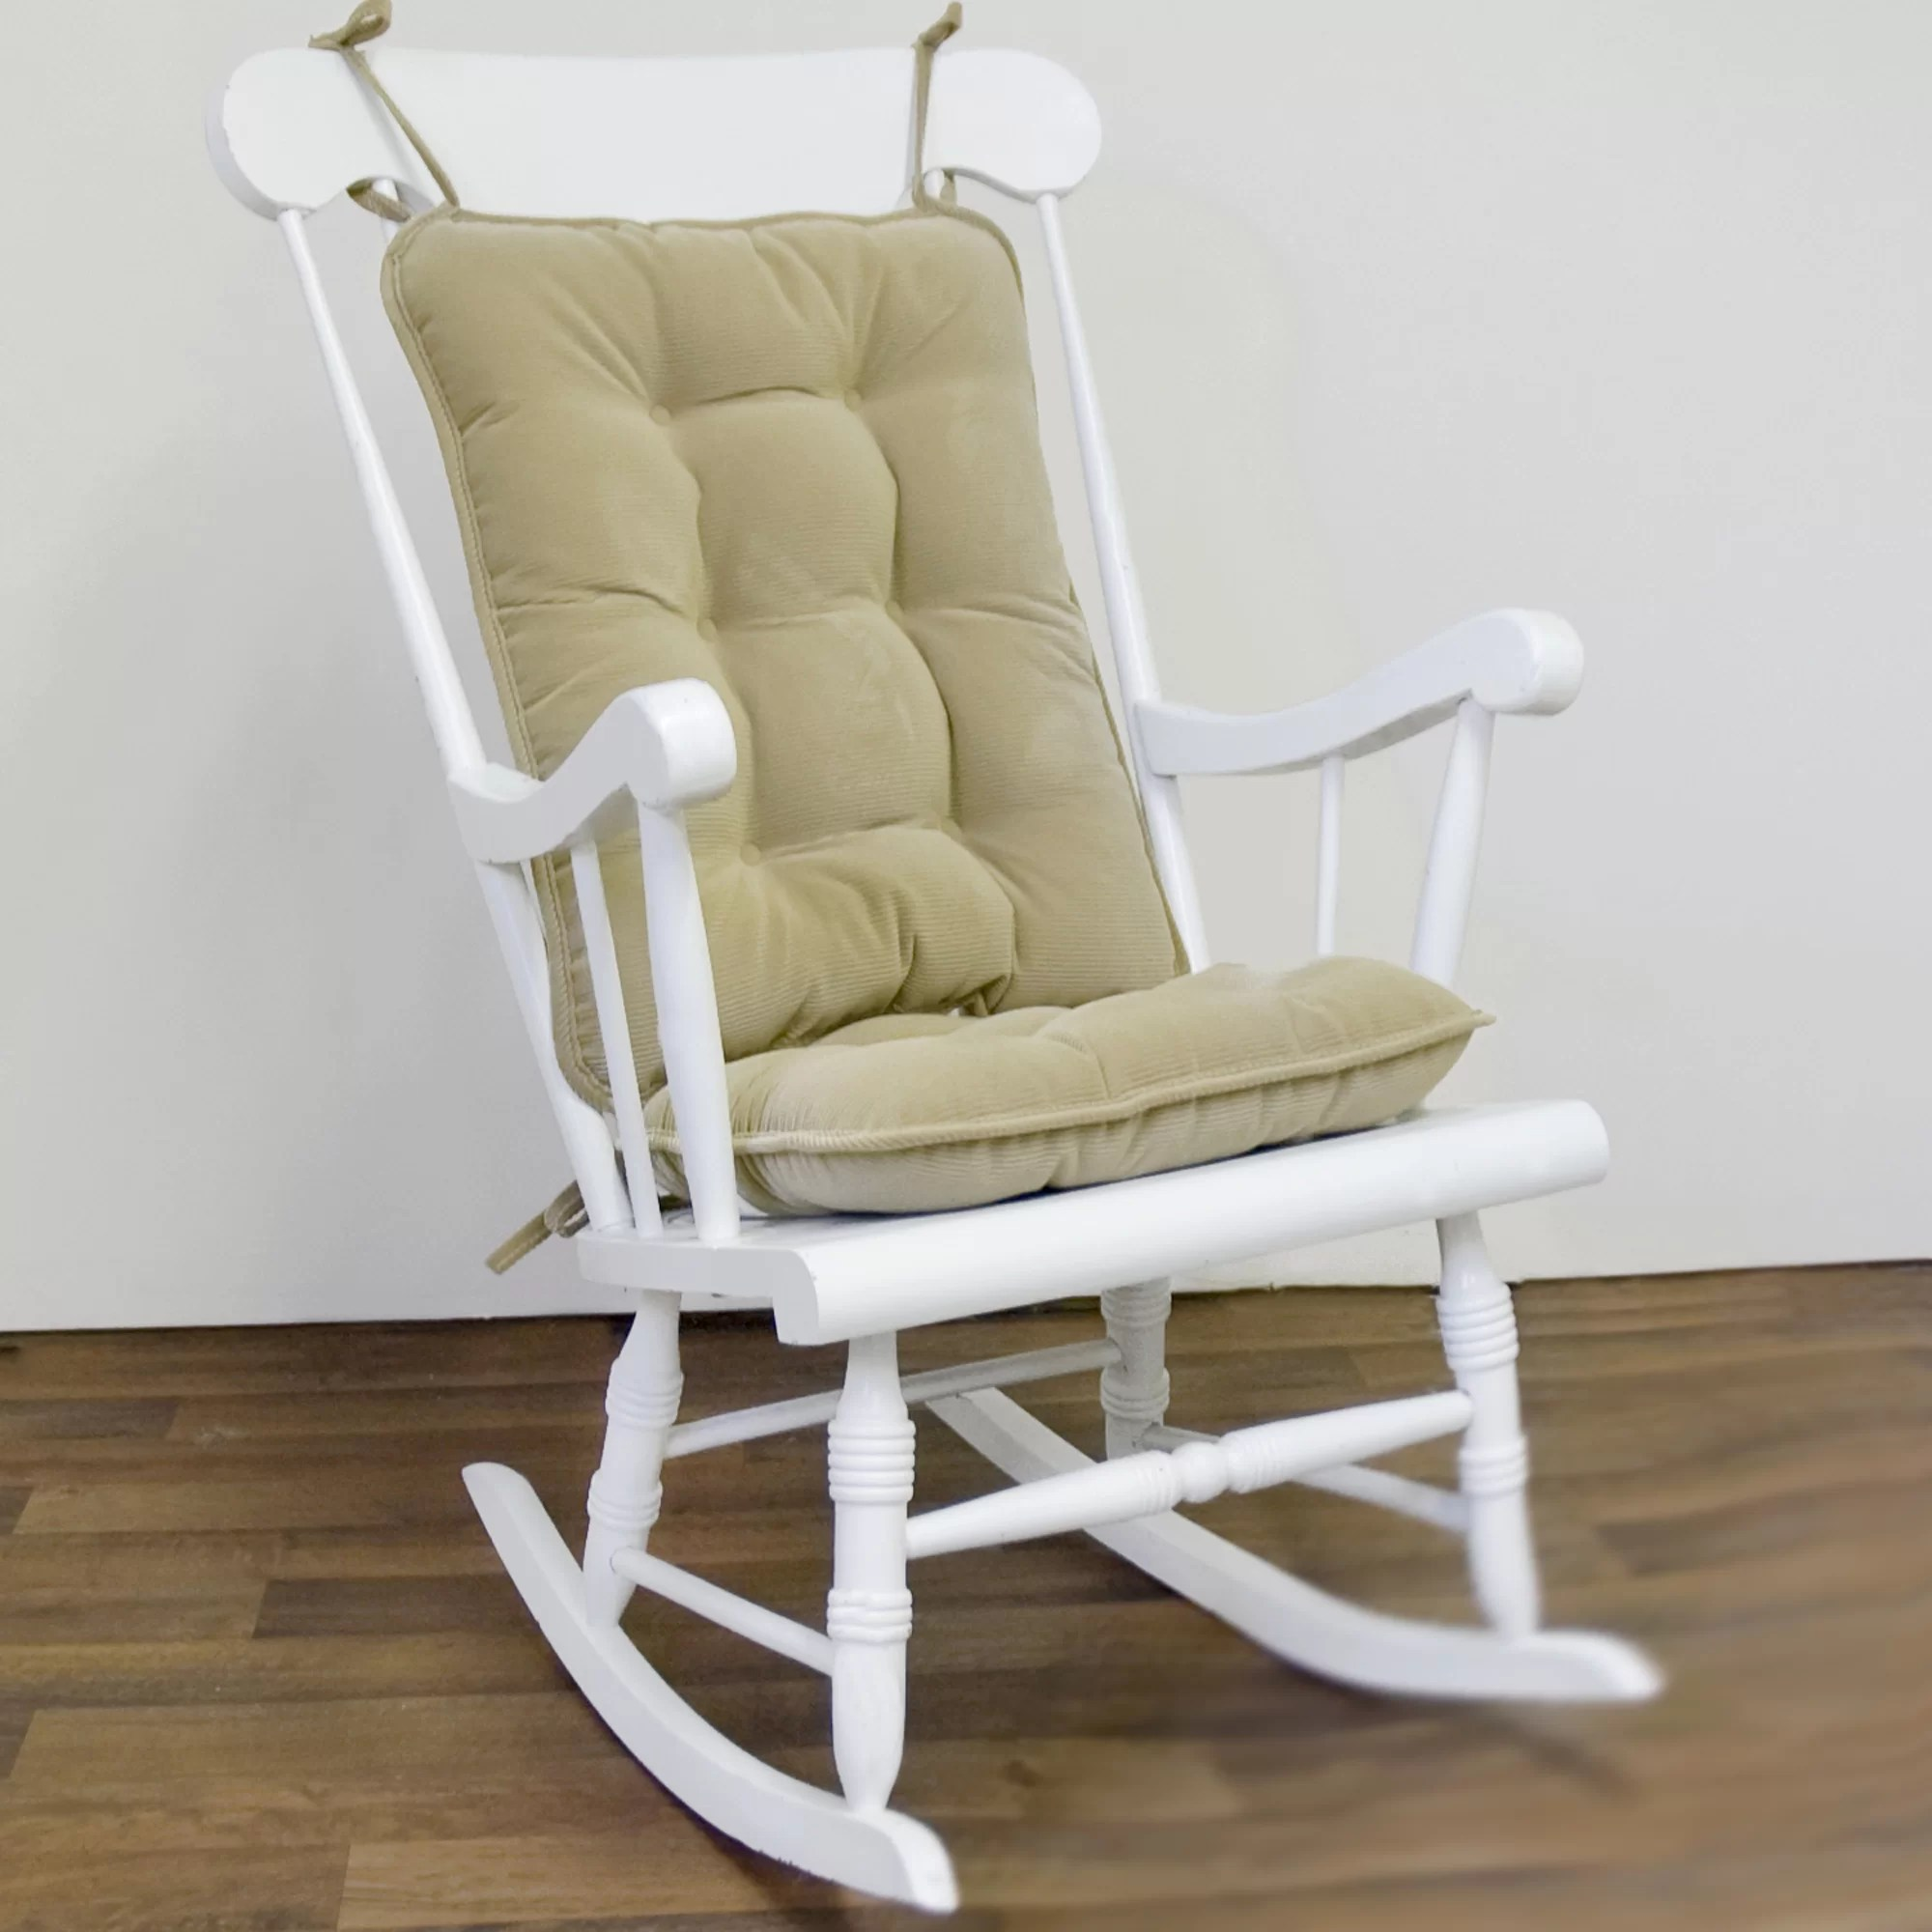 Rocking Chair With Cushions Greendale Home Fashions 2 Piece Solid Rocking Chair